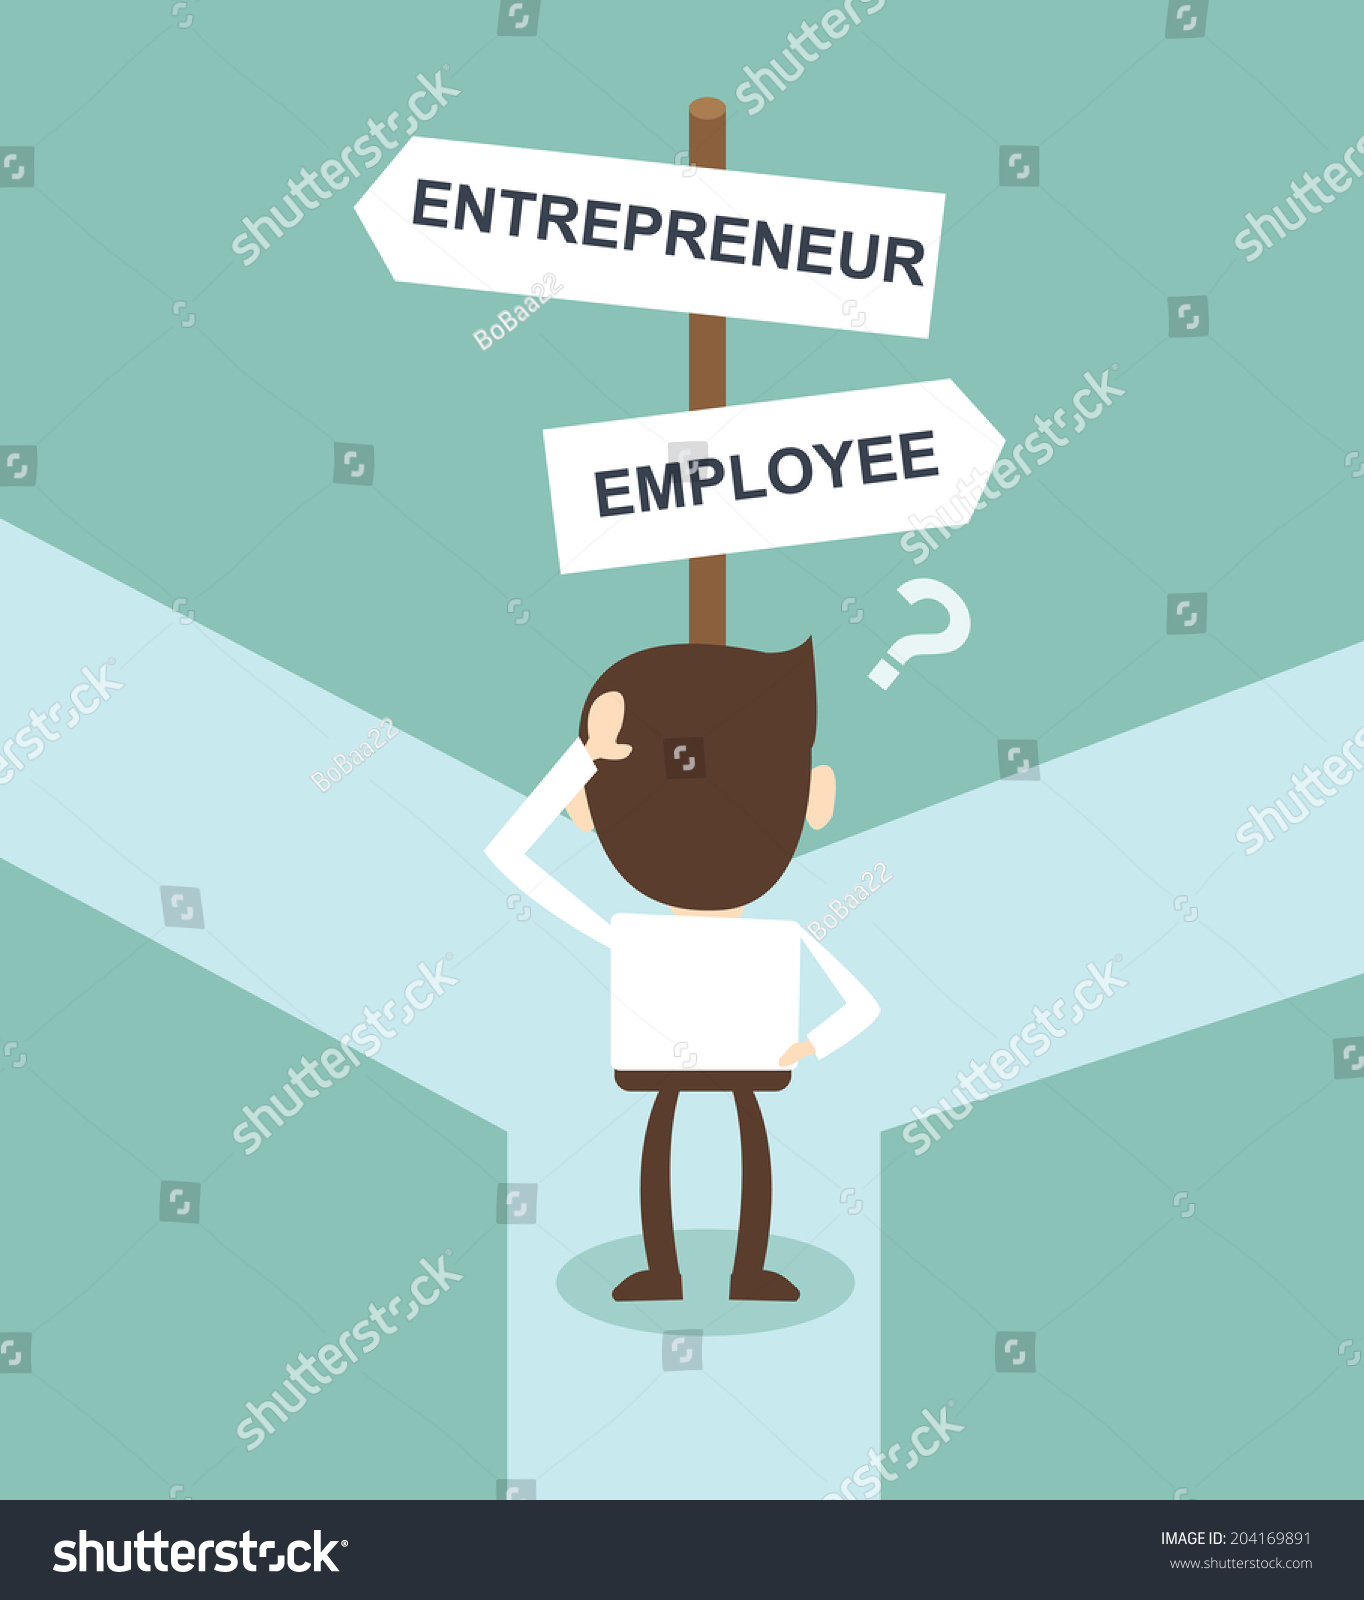 change career directions employee entrepreneur street stock vector change career directions employee entrepreneur street direction sign